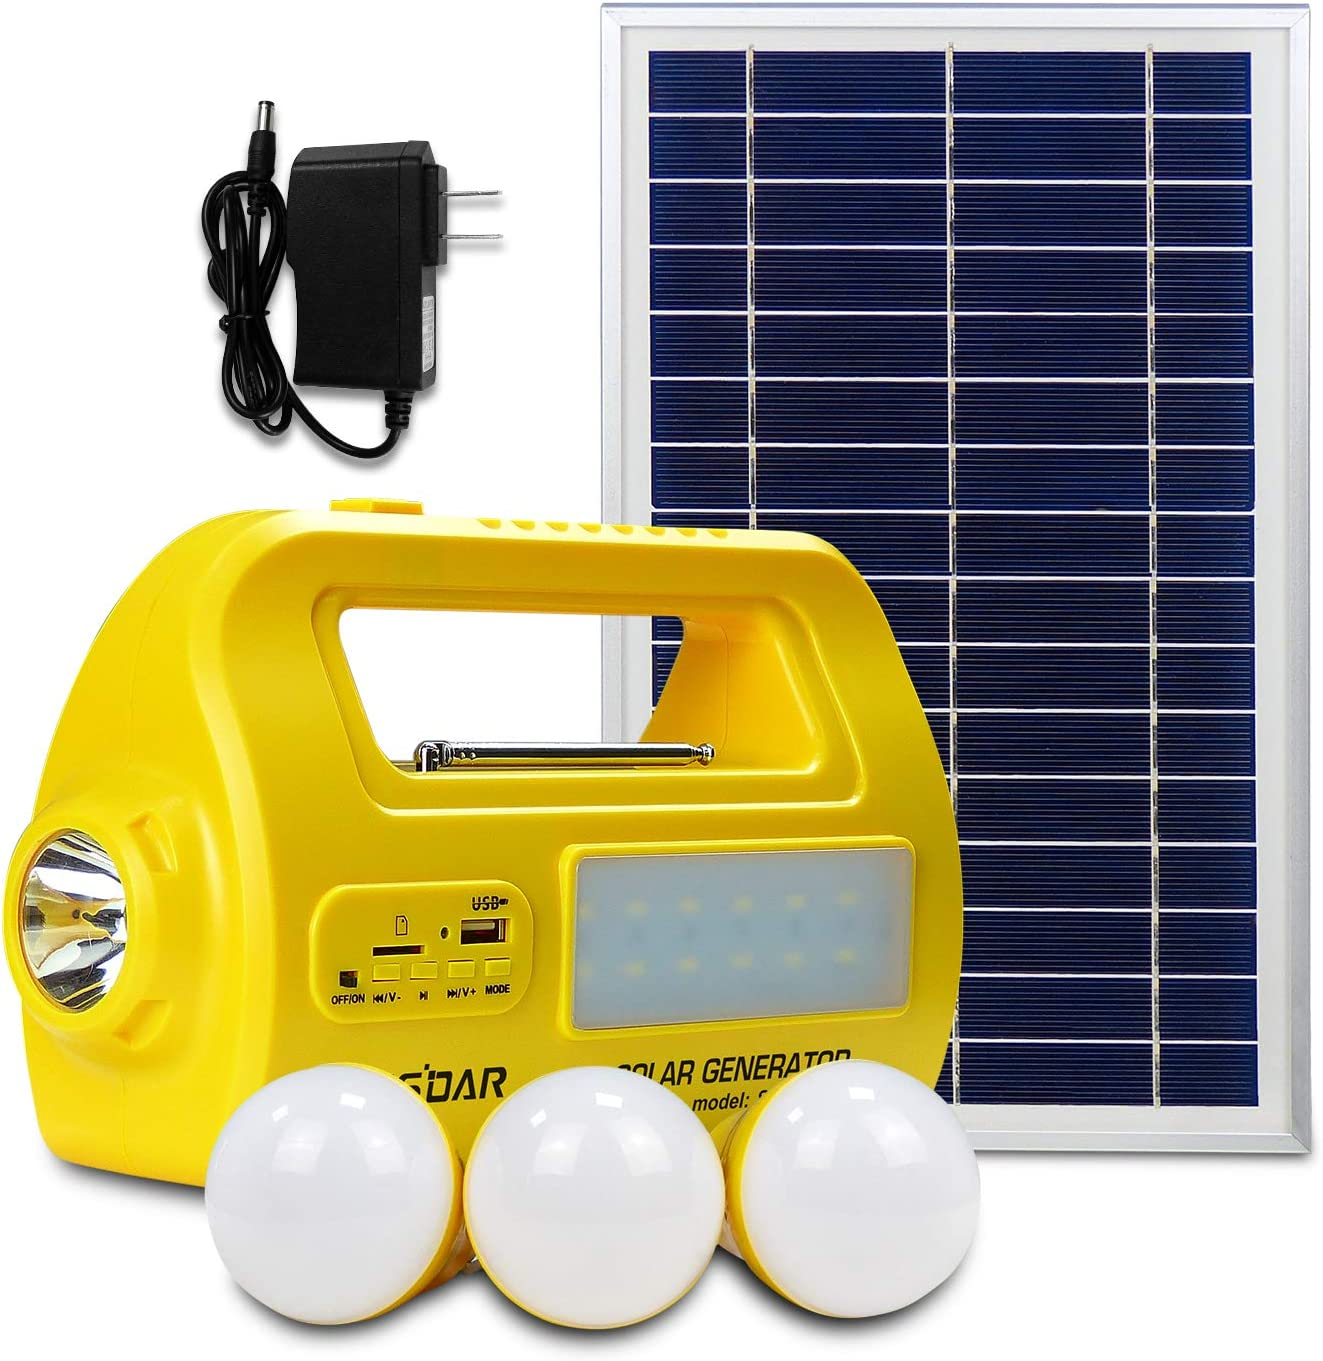 Portable Solar Generator with Solar Panel,Solar Lights, Solar Home System, Multifunctional Solar Generator with 3 Sets LED Lights and 2 USB Port for Power Bank, Camping,Speaker Update Version (Yellow)